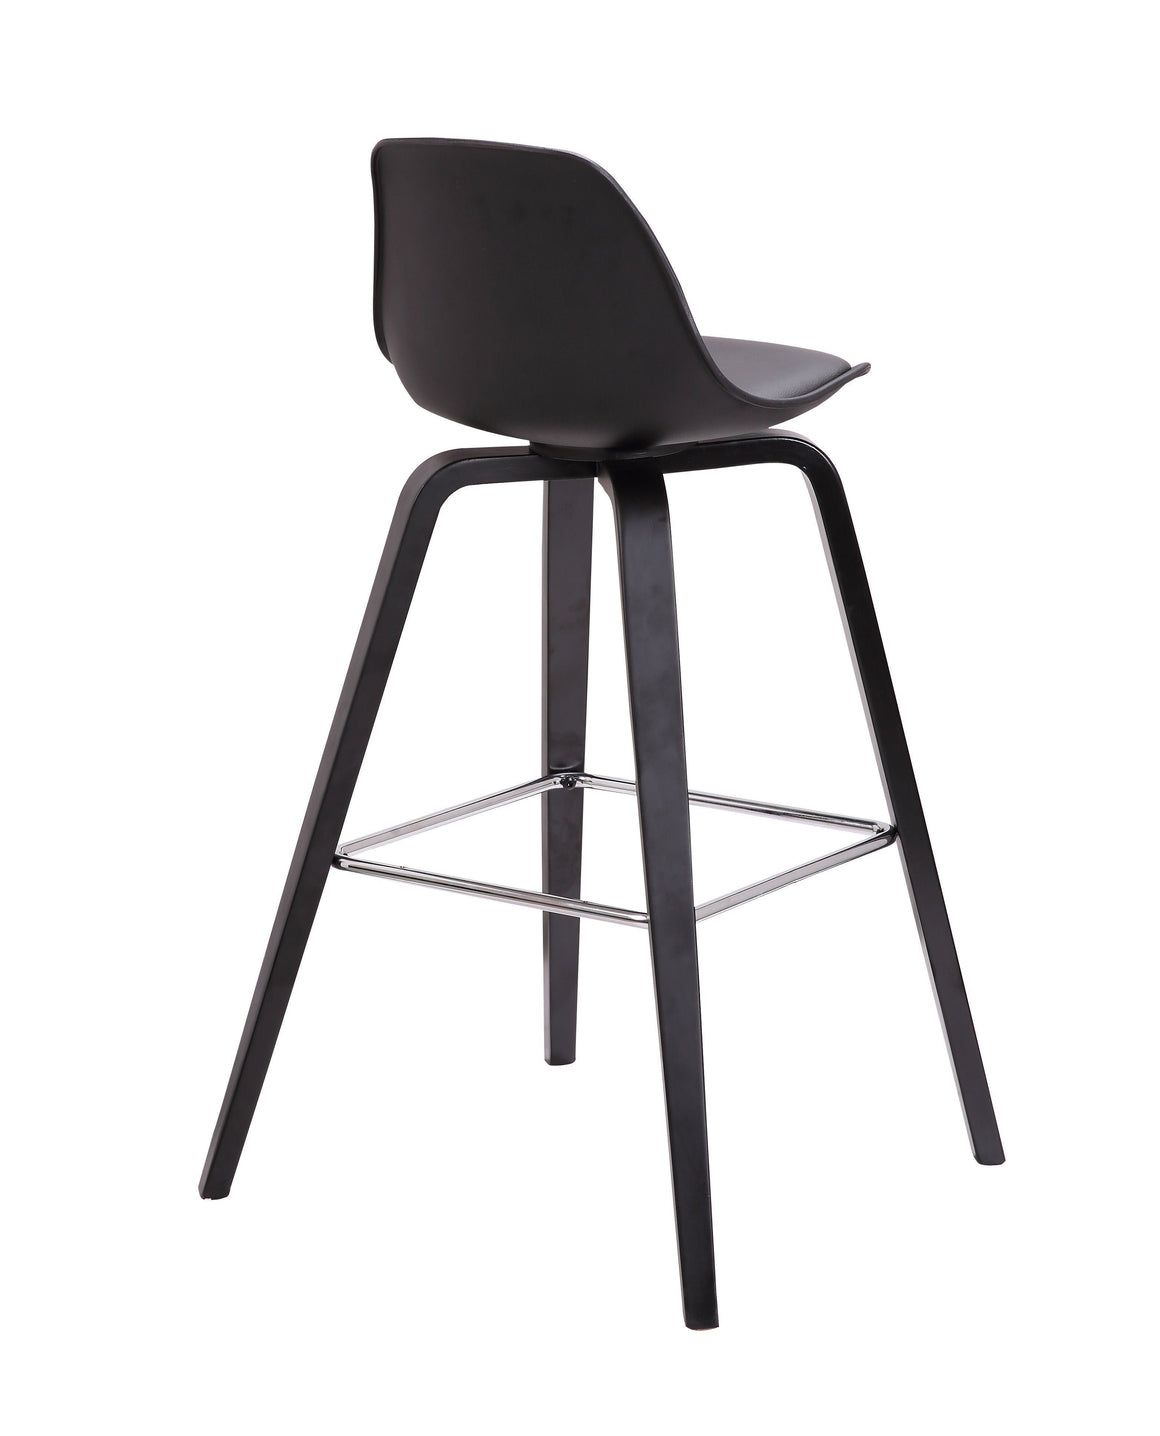 MATRIX BAR CHAIR Philbee Interiors